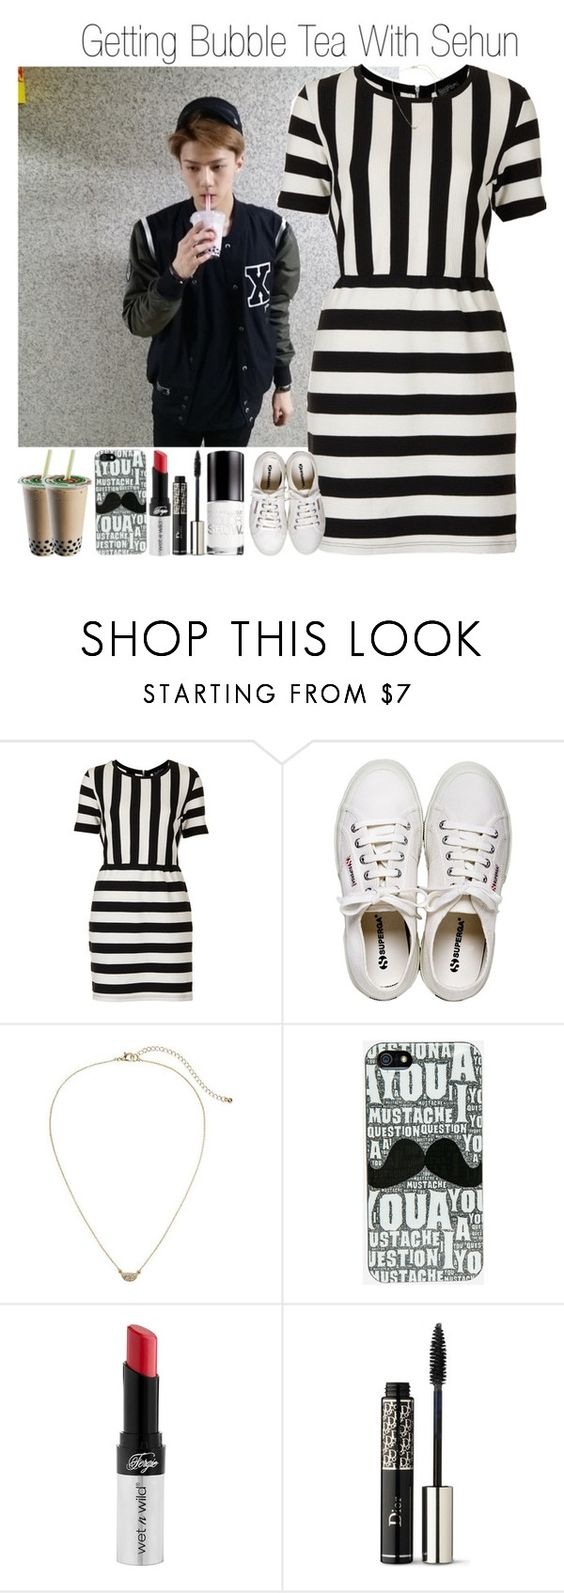 """""""Getting Bubble Tea With Sehun"""" by ana-styles-mahone ❤ liked on Polyvore featuring Topshop, Henri Bendel, Gap, Wet n Wild, Christian Dior, Maybelline, kpop, EXO and Sehun"""